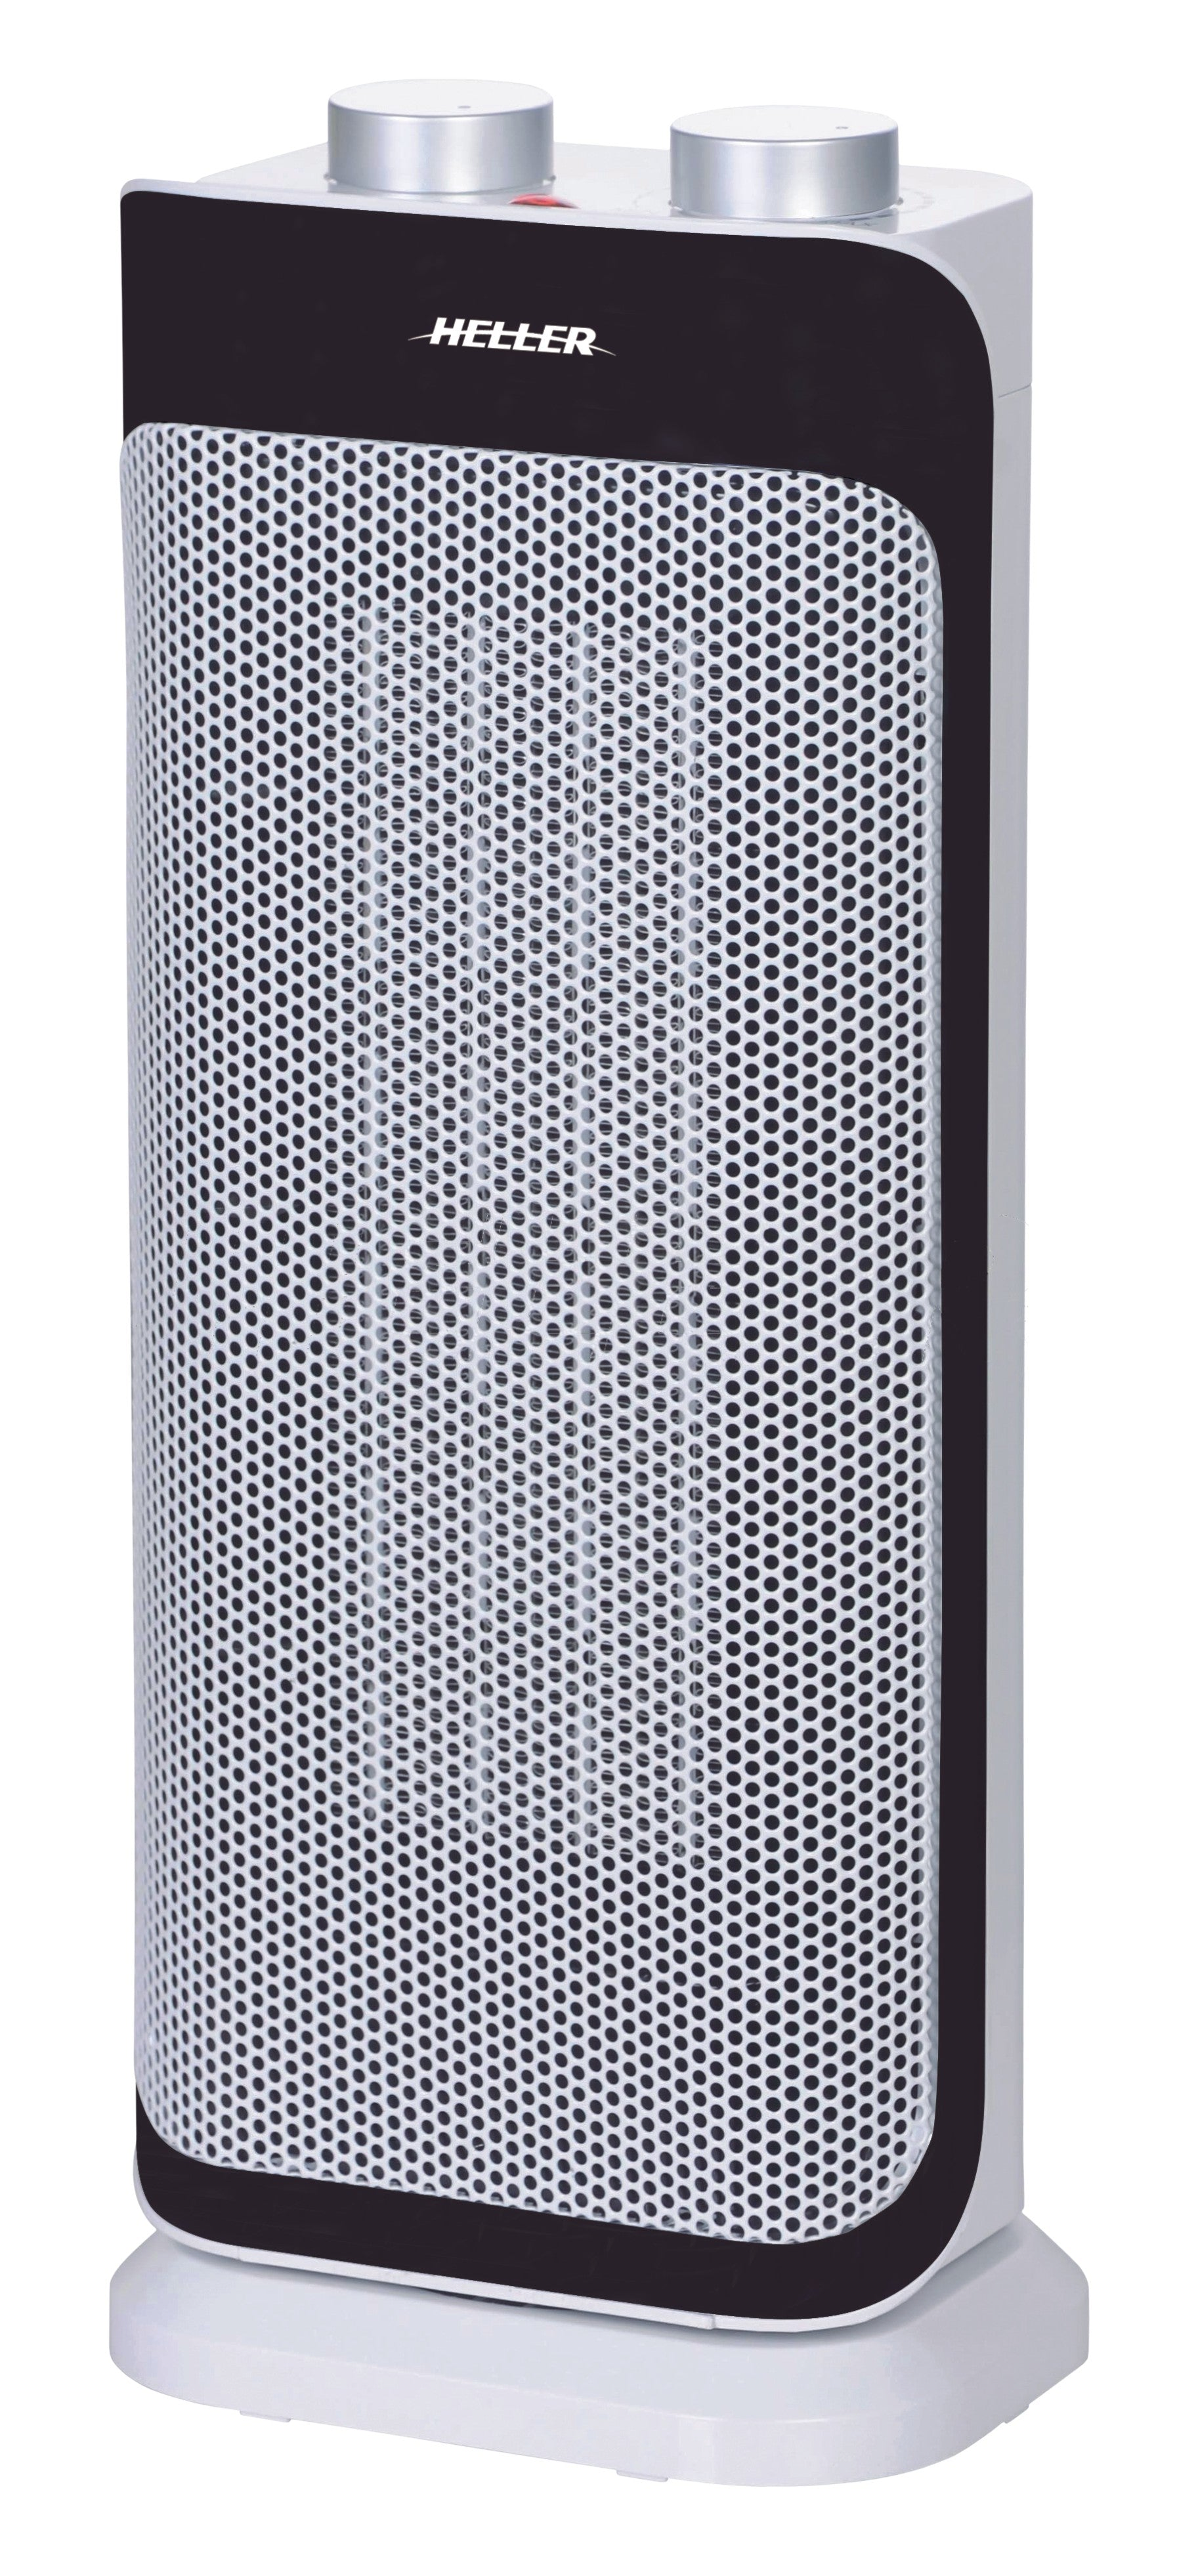 Ceramic Oscillating Fan Heater